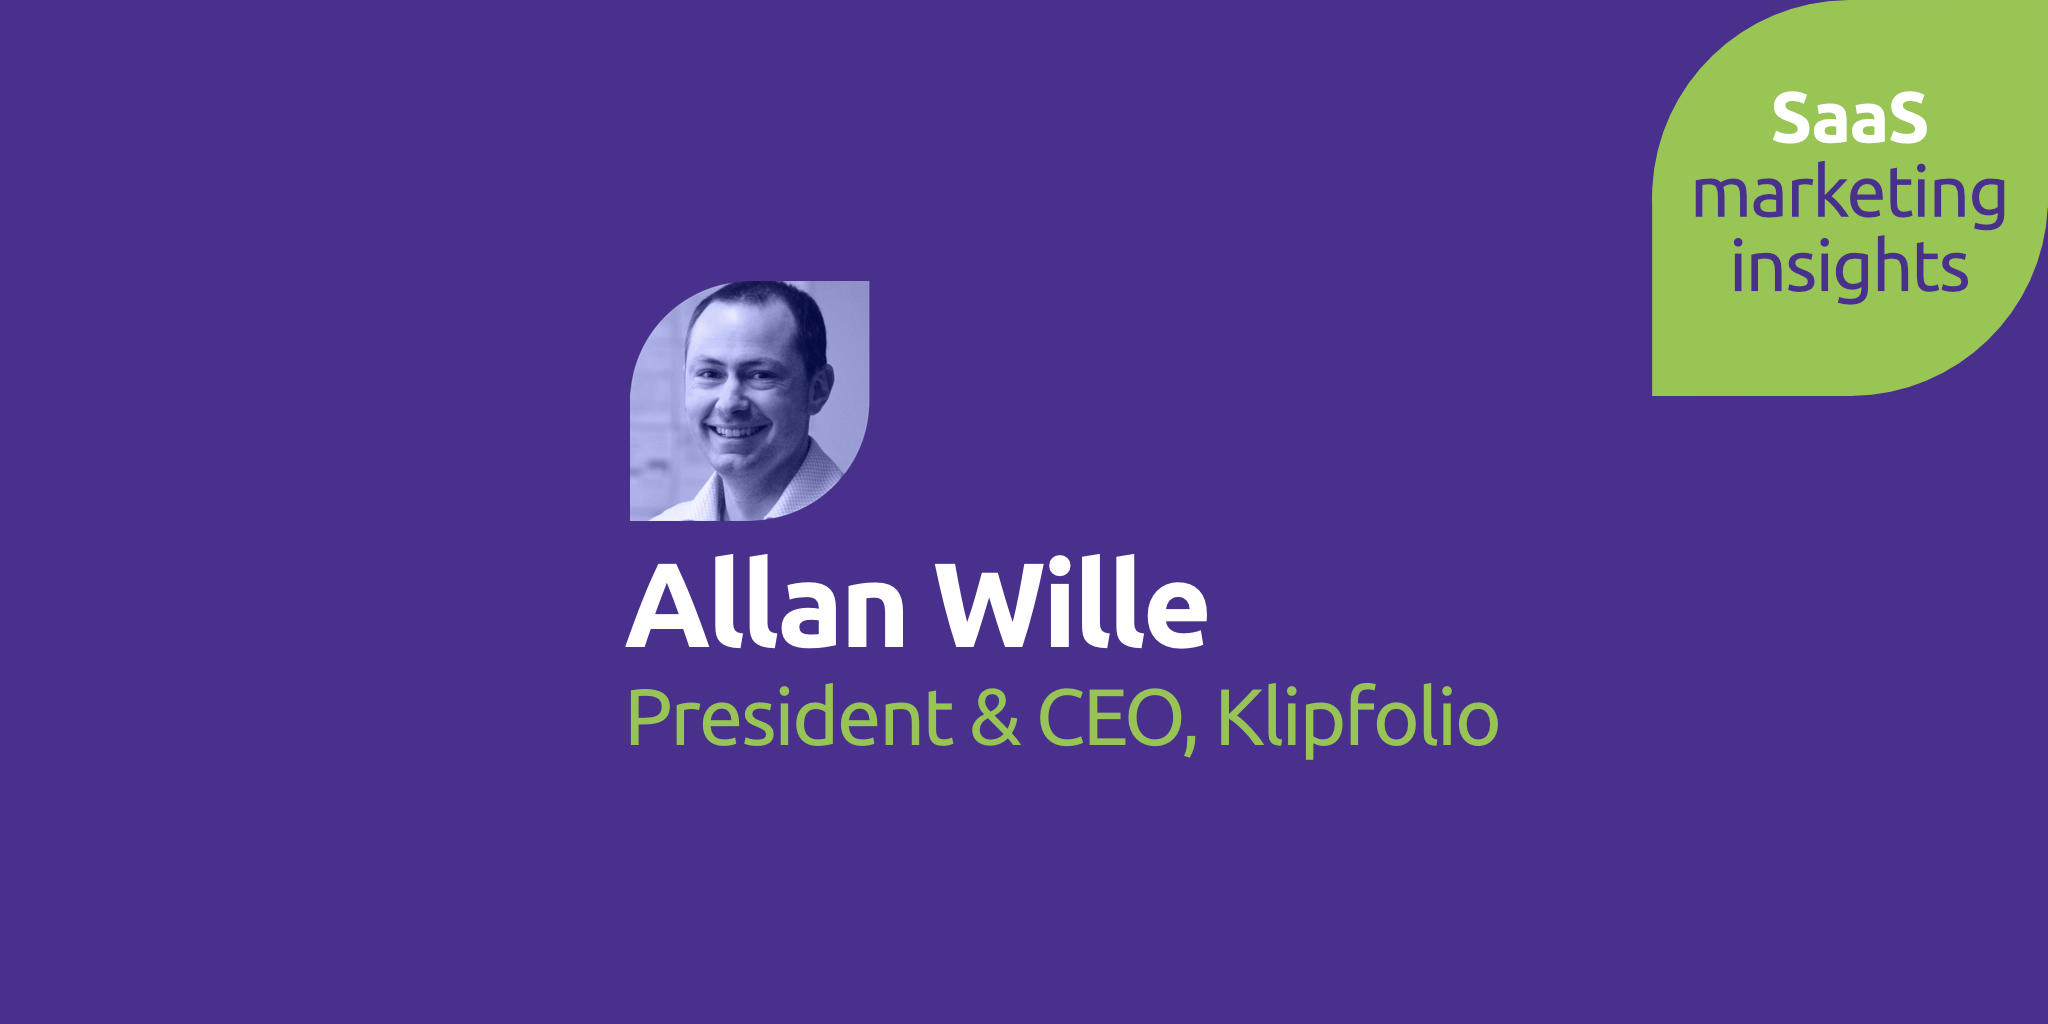 SaaS Marketing Insights, Episode 1: Allan Wille, Klipfolio